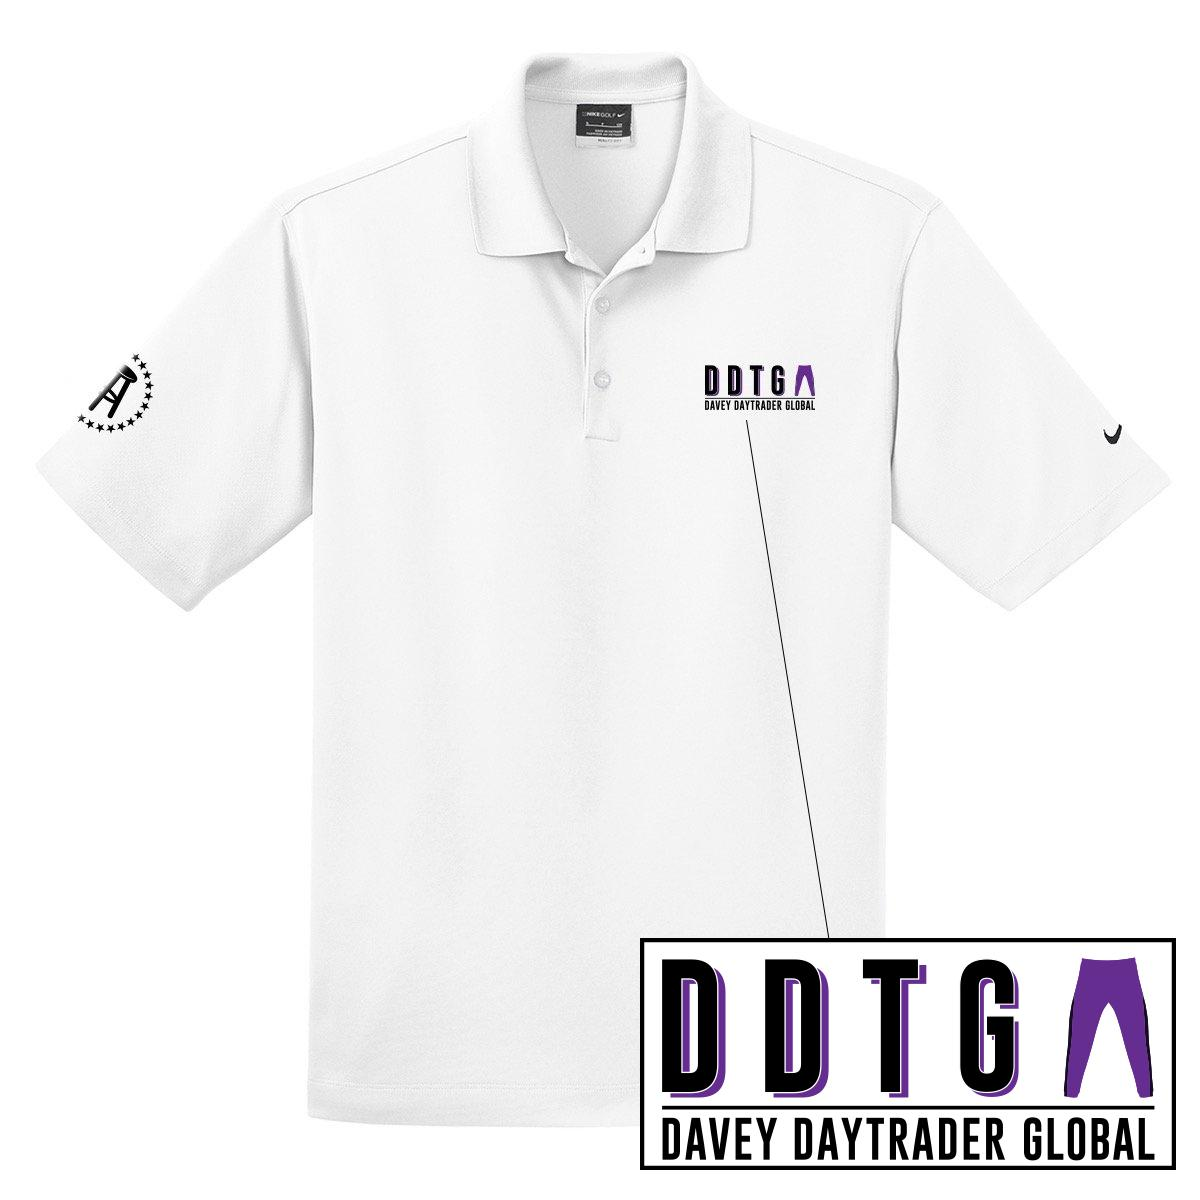 Davey Day Trader Global Nike Polo